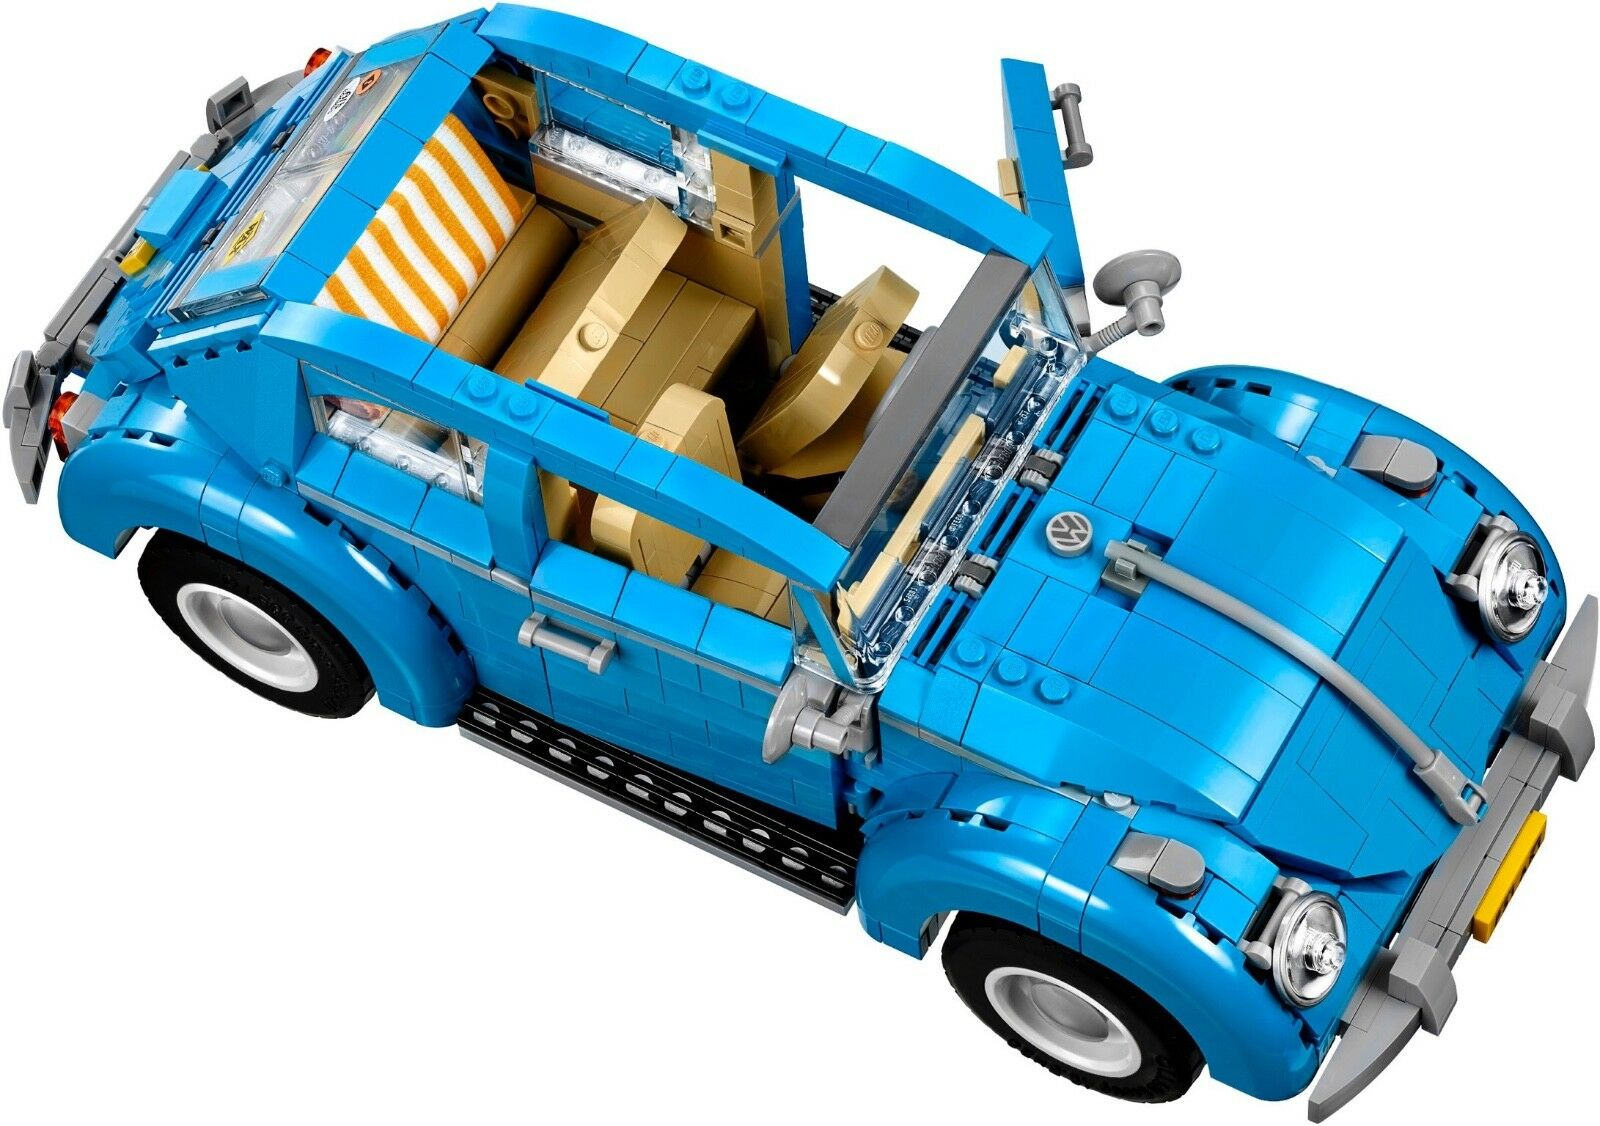 LEGO VOLKSWAGEN BEETLE 10252 EXPERT CREATOR MISB, BRAND NEW, NEW, NEW, SEALED FREE SHIP 539f7c